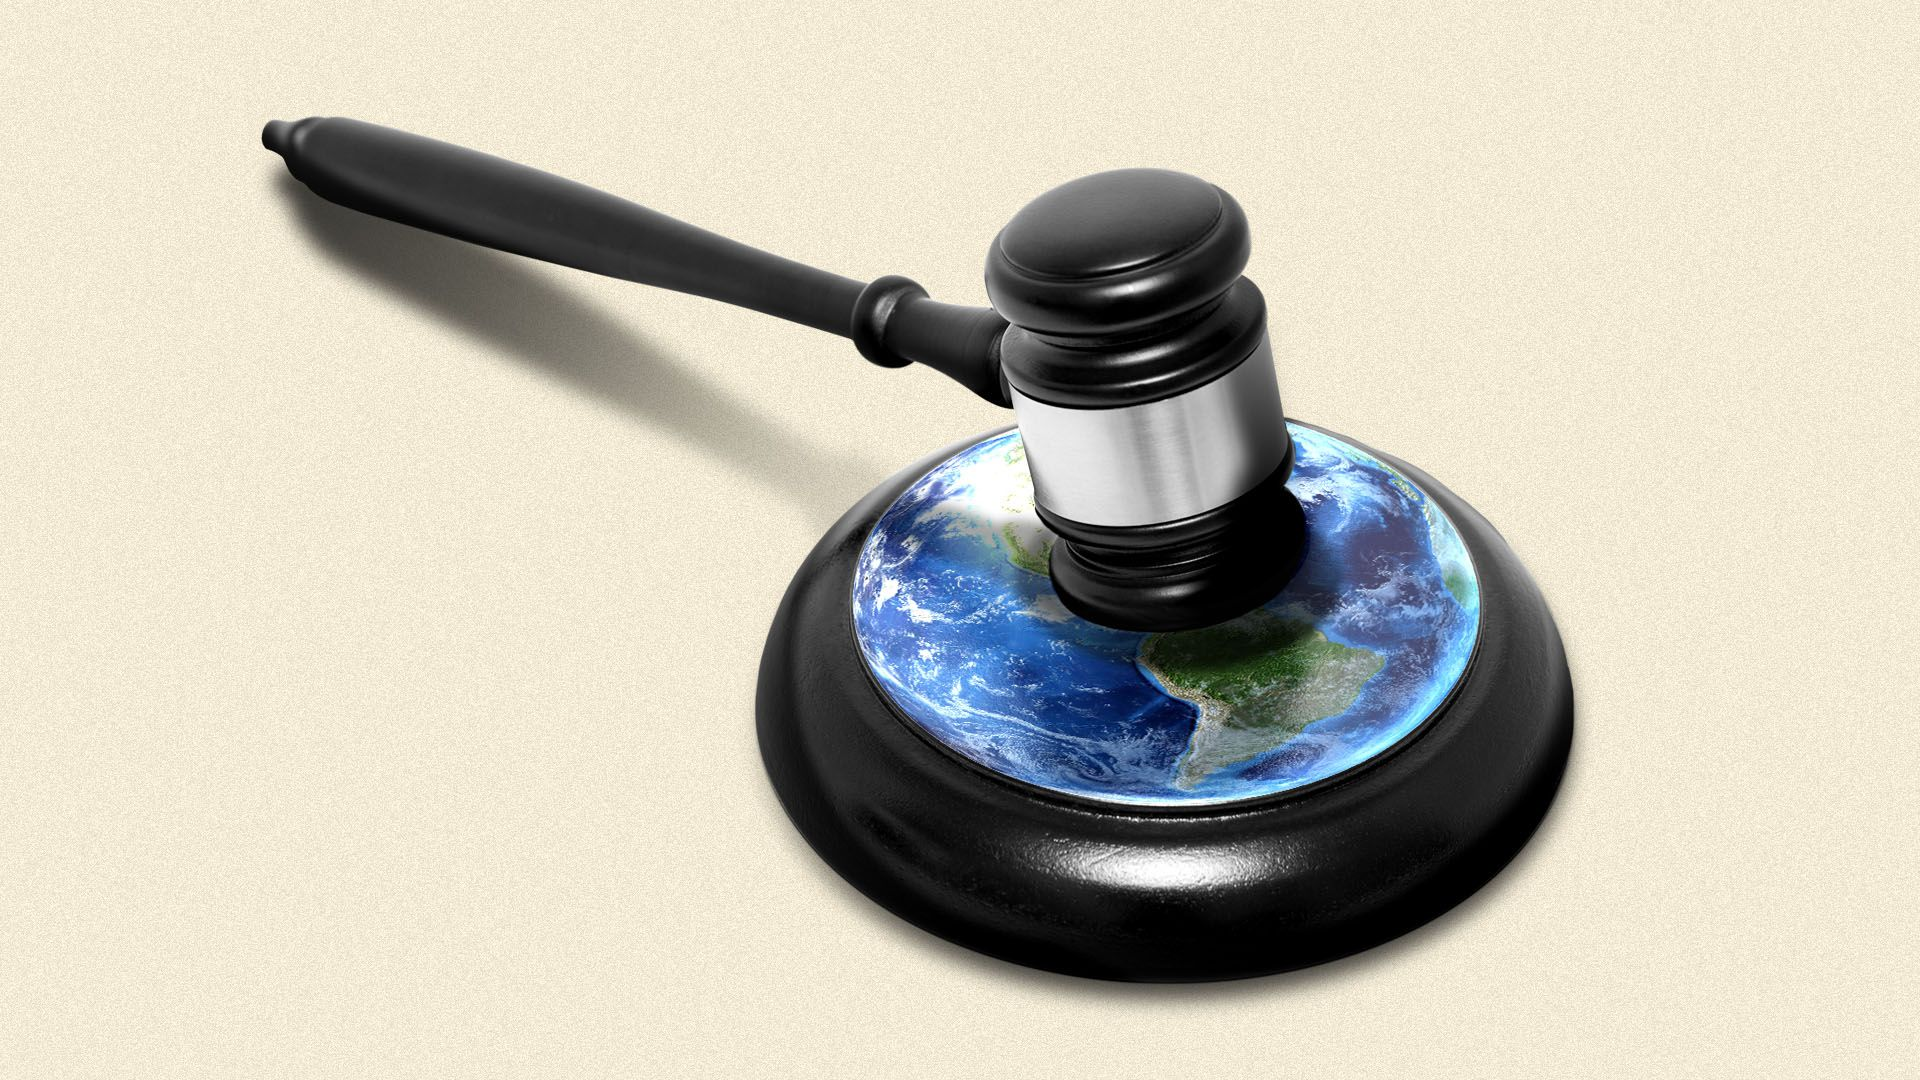 To fight climate change, advocates push long-shot lawsuits